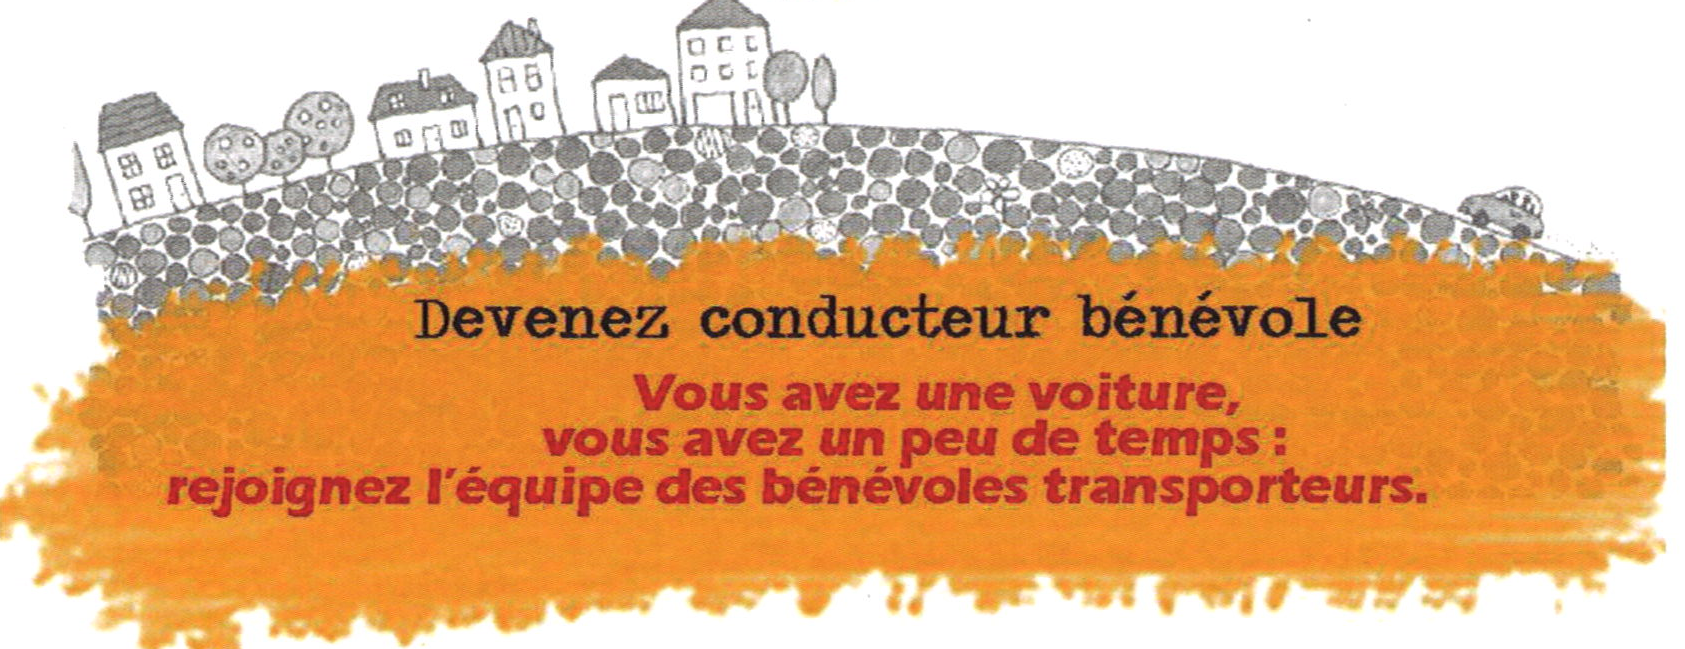 conducteur-benevole